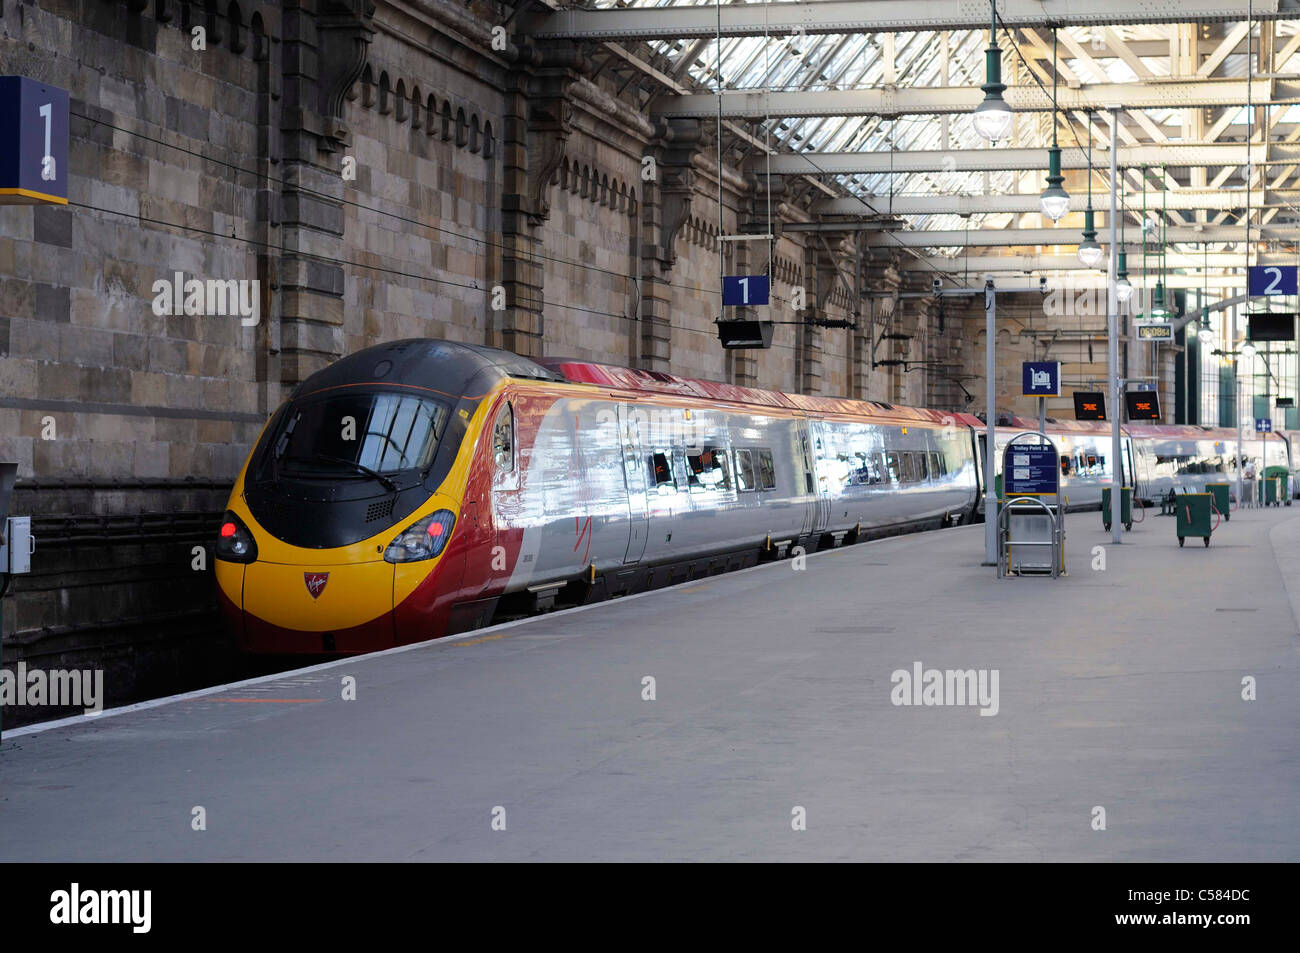 Virgin Rail Train At The Platform In Glasgow Central Station - Stock Image